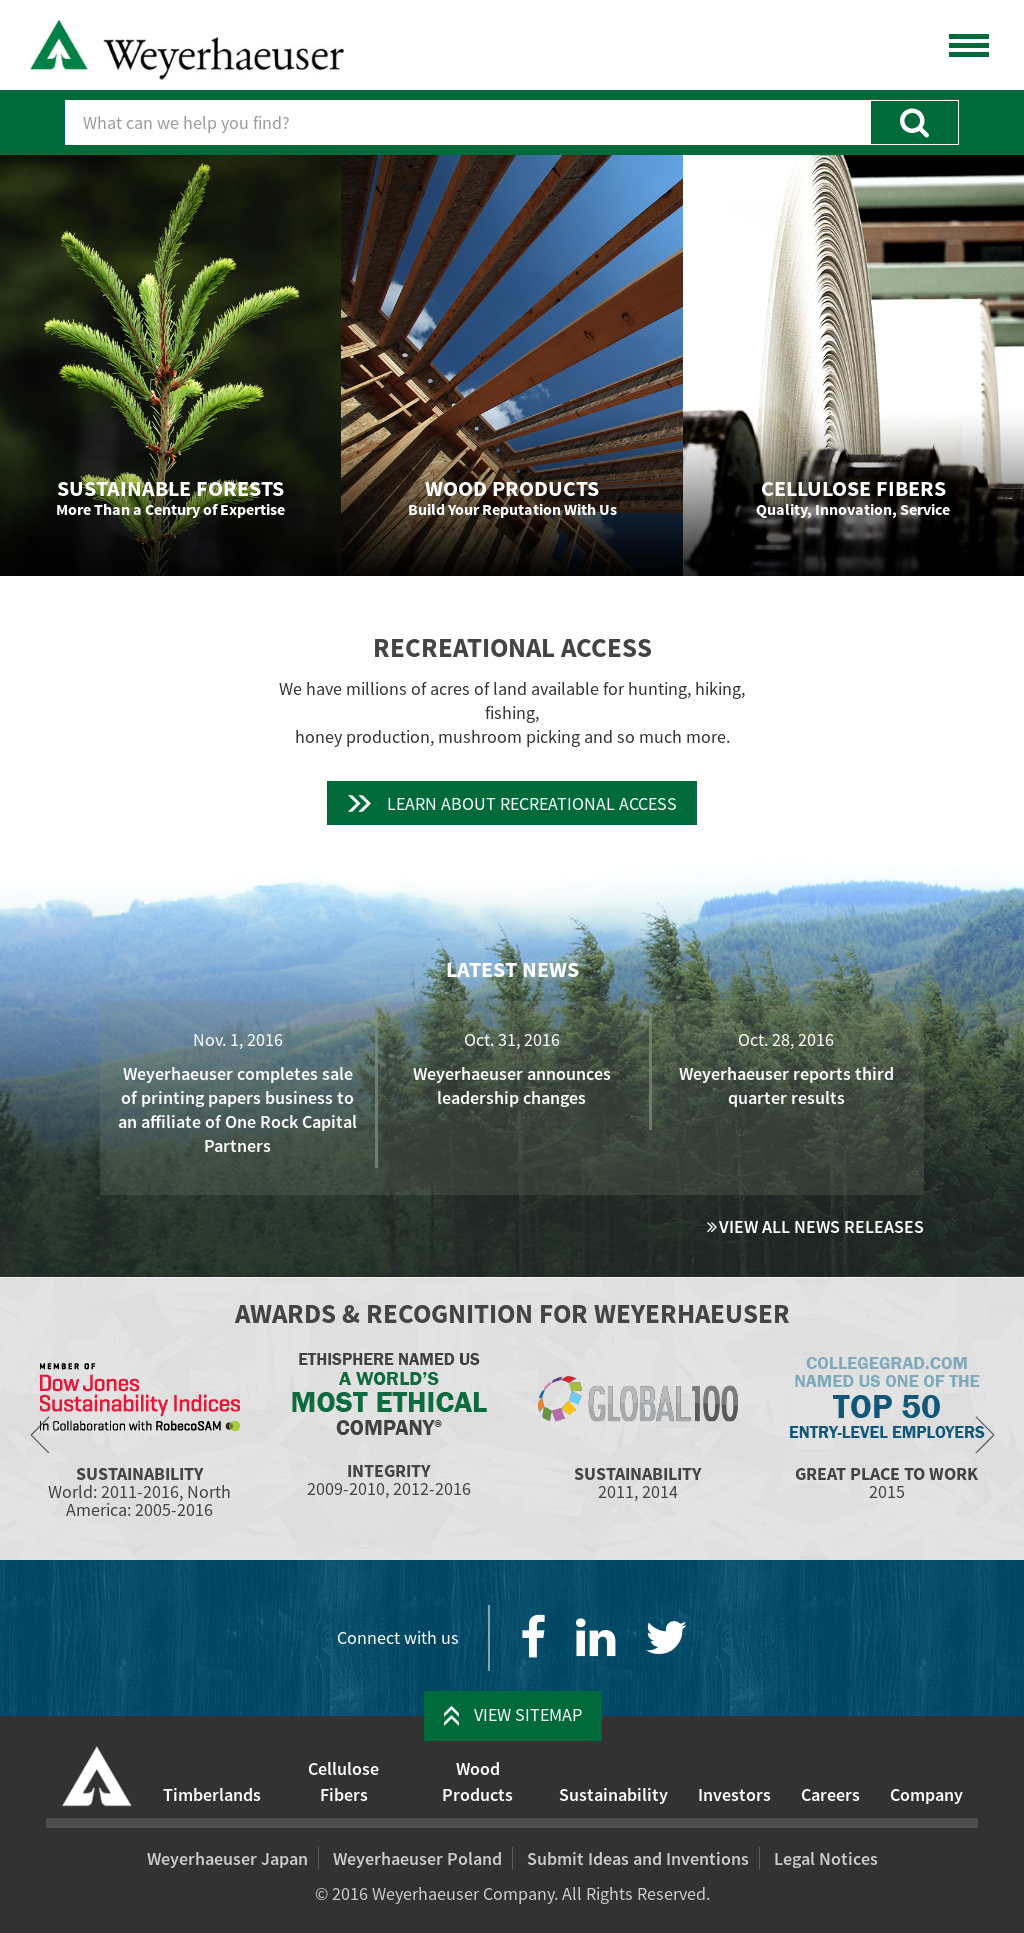 Weyerhaeuser Competitors, Revenue and Employees - Owler Company Profile